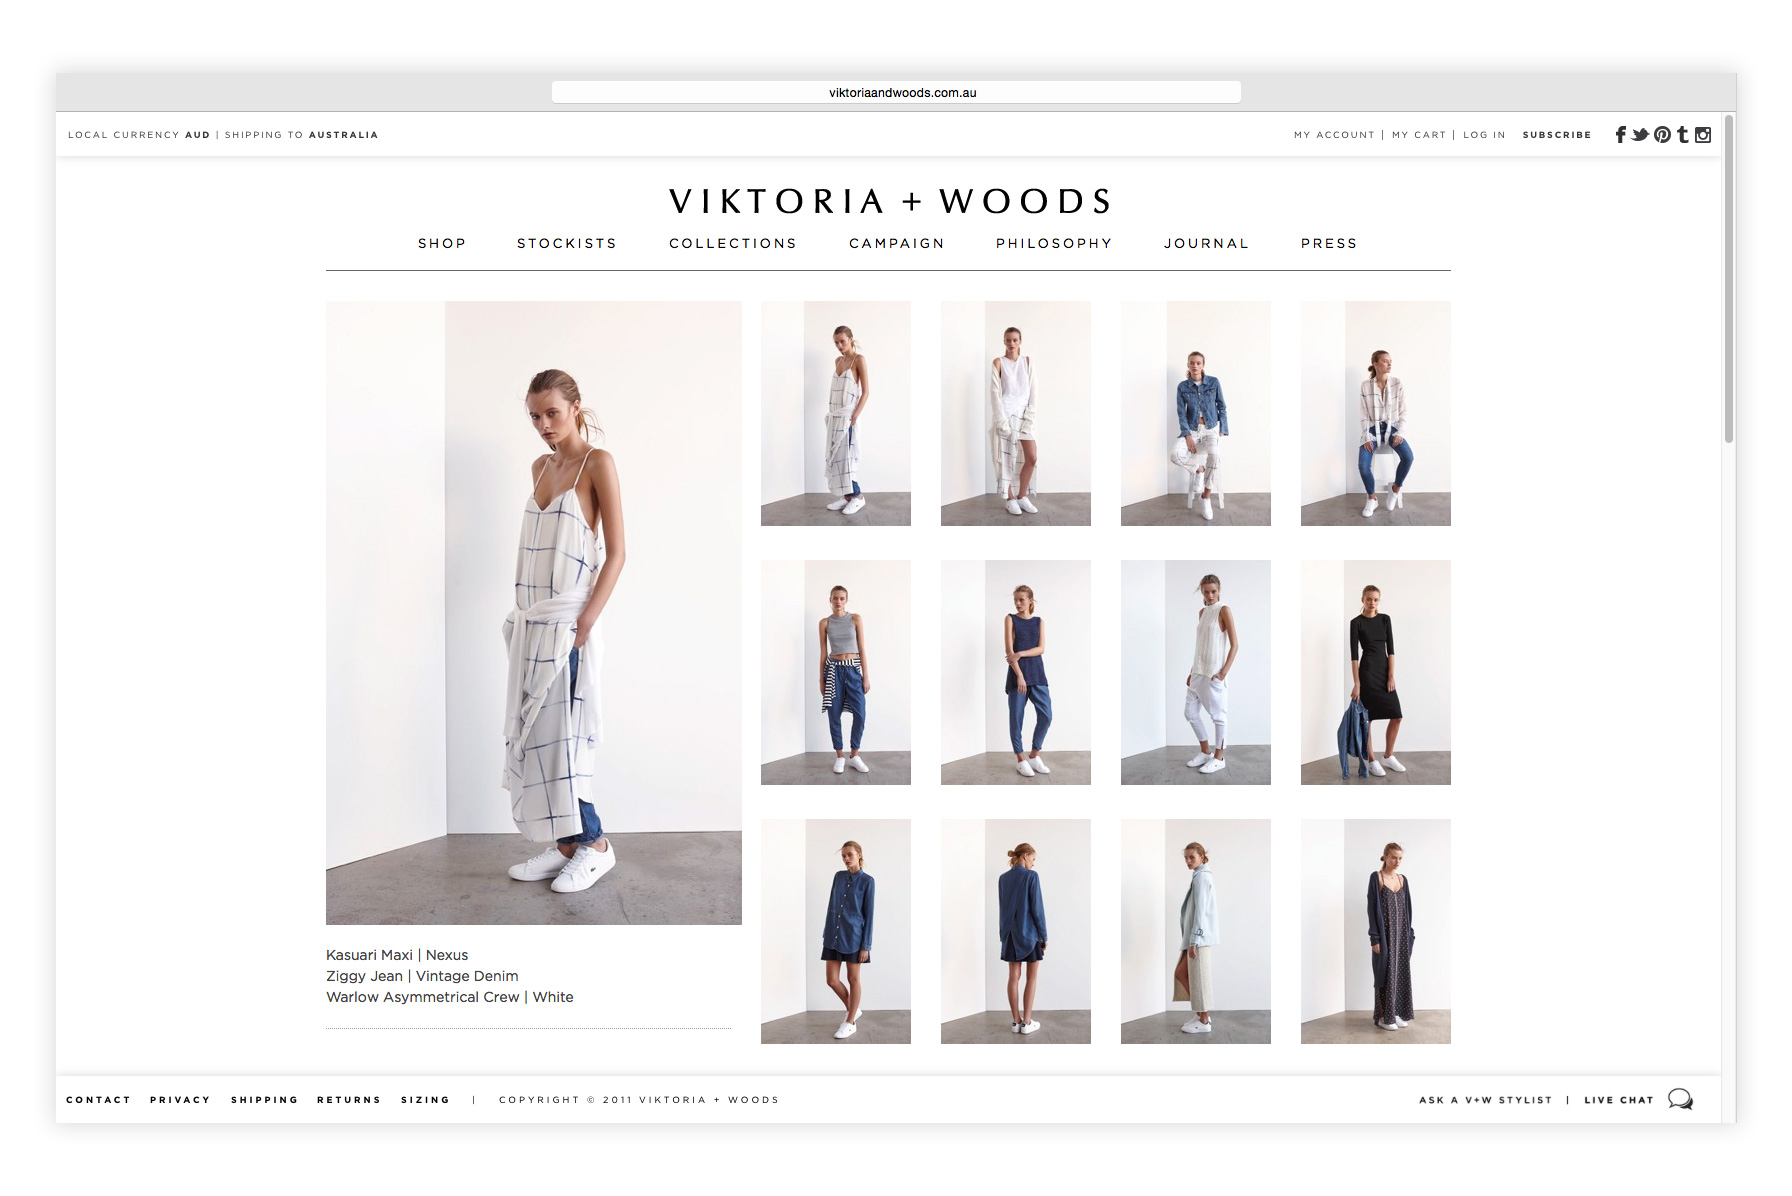 VIKTORIA + WOODS Website Design